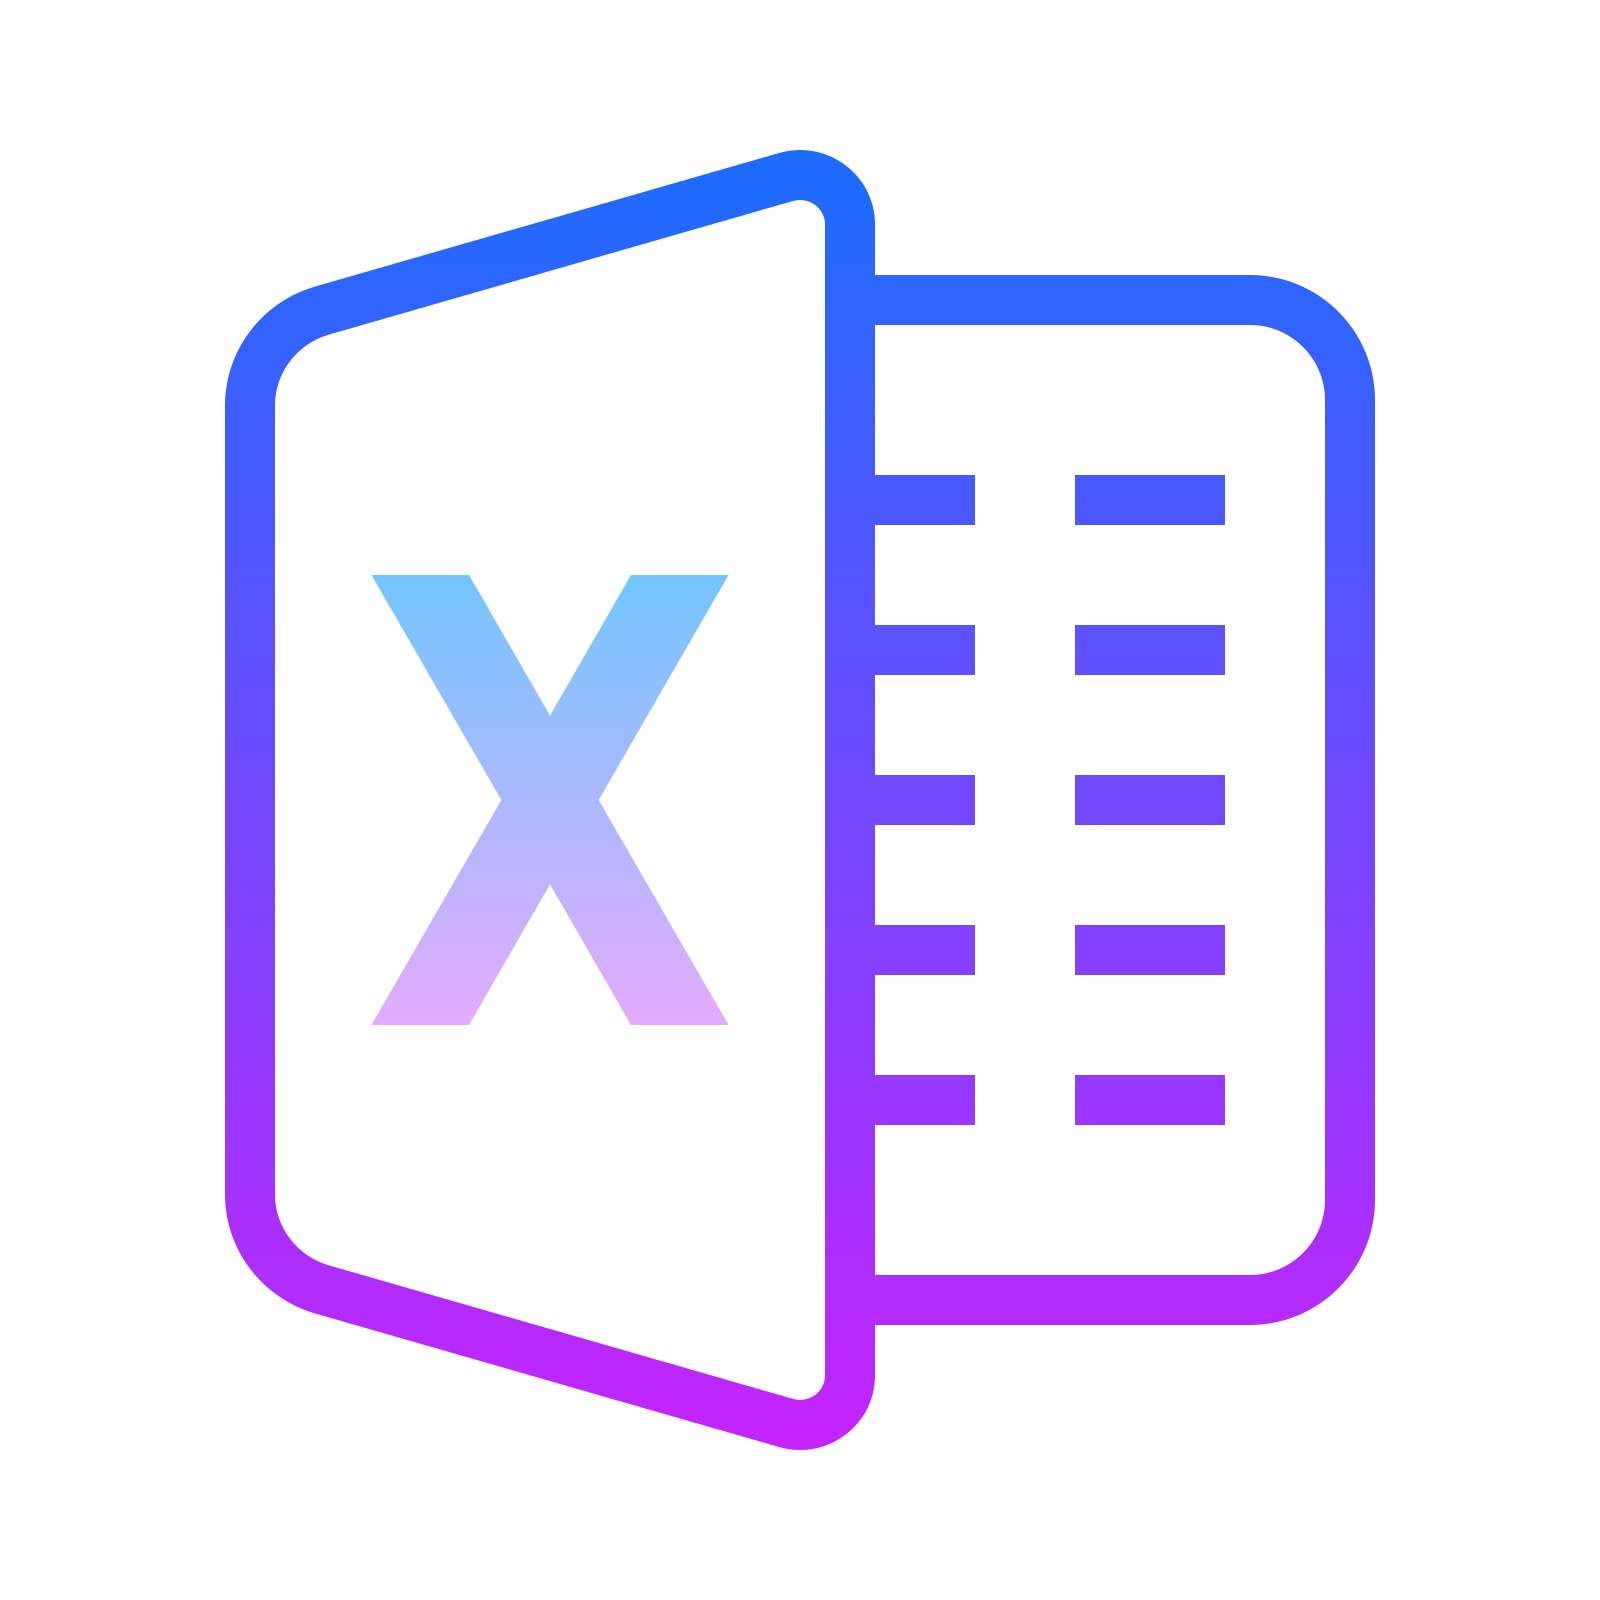 microsoft excel icon png logo #5947